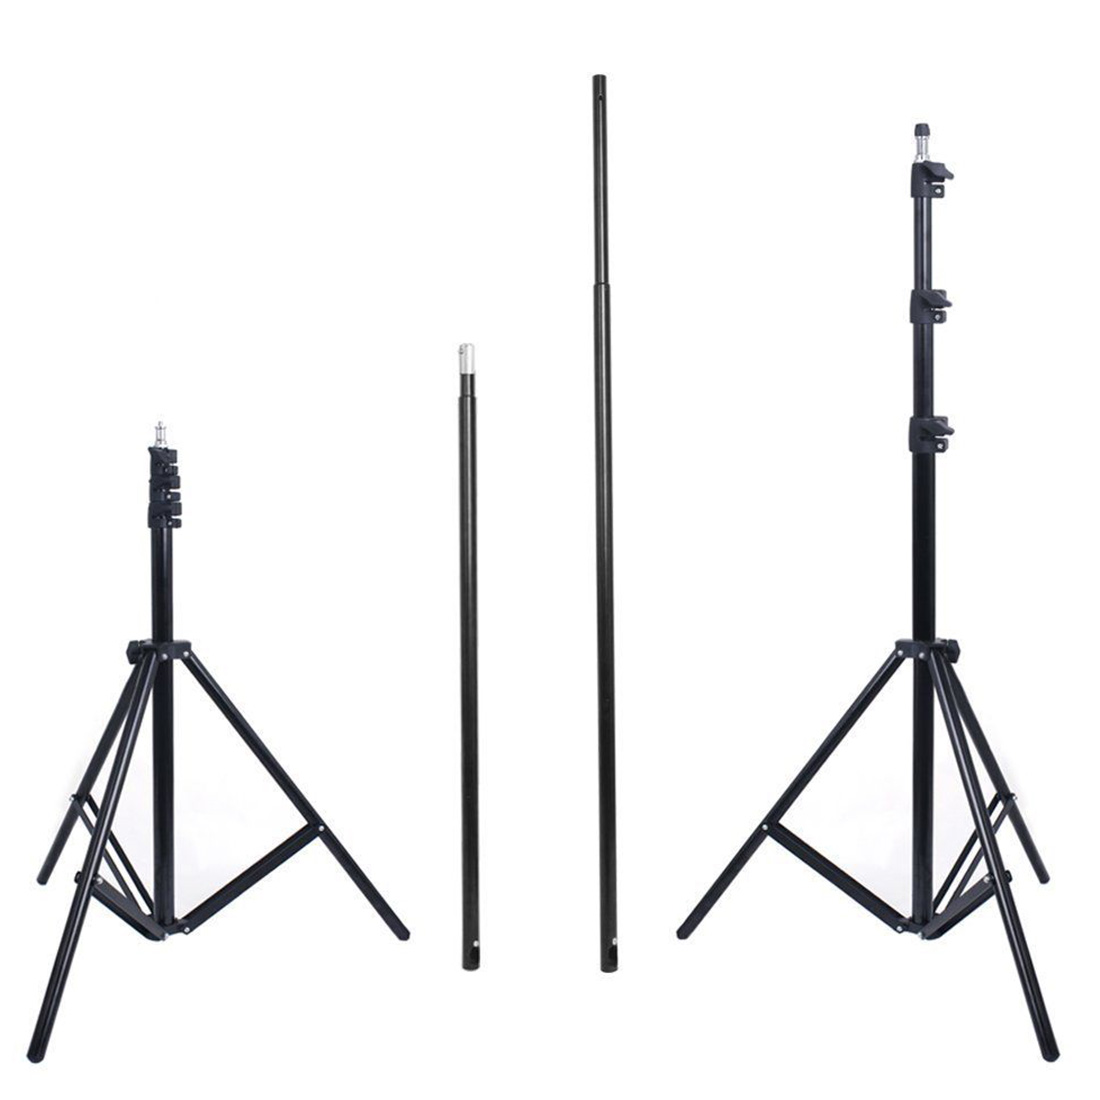 2.8m x 3m Photo Studio Background Backdrop Support Stand Kit + Free Carry Bag 2 8m x 3m pro adjustable background support stand photo backdrop crossbar kit photography stand 3 clips for photo studio